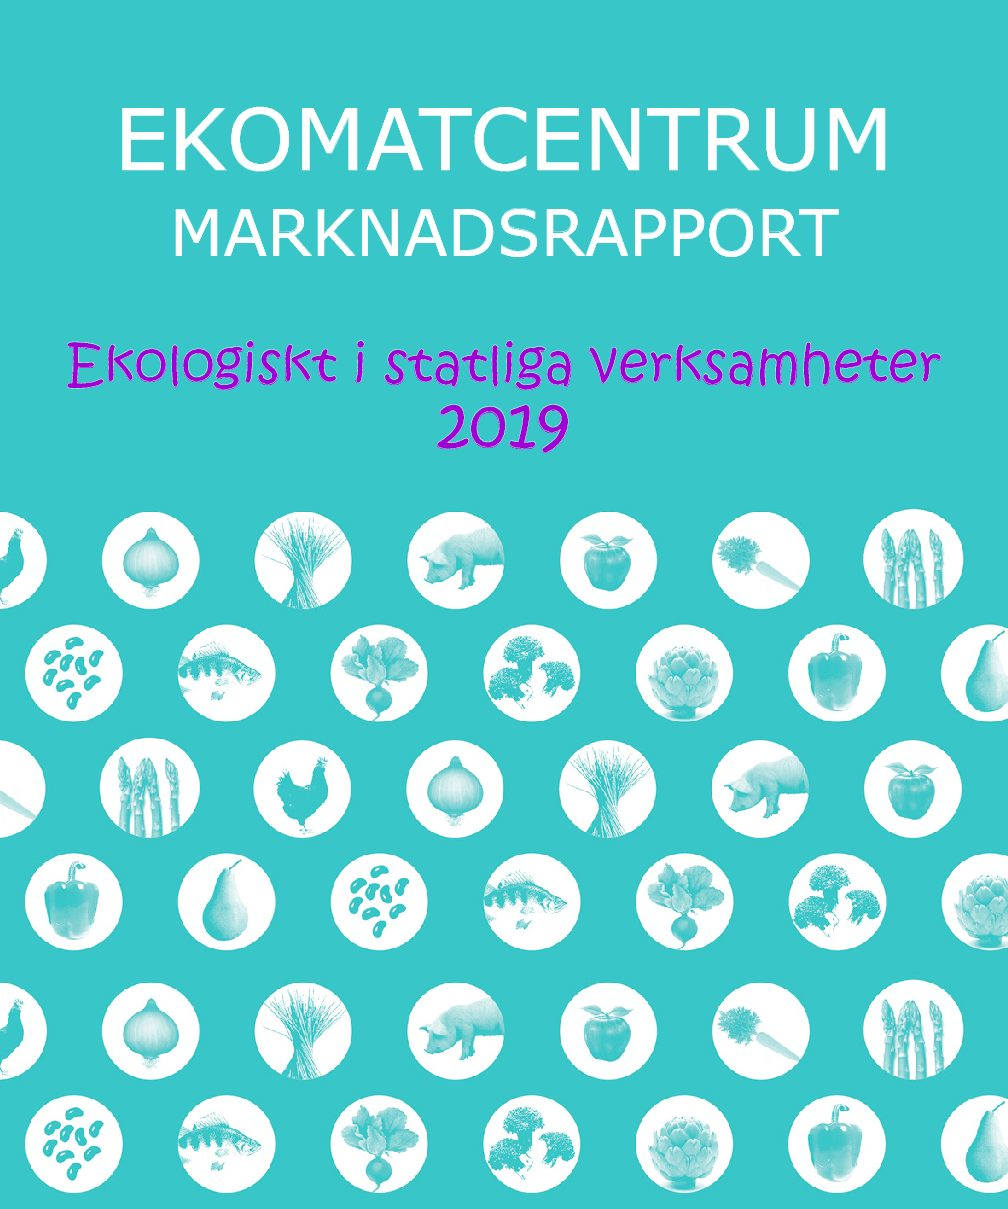 Marknadsrapport 2019